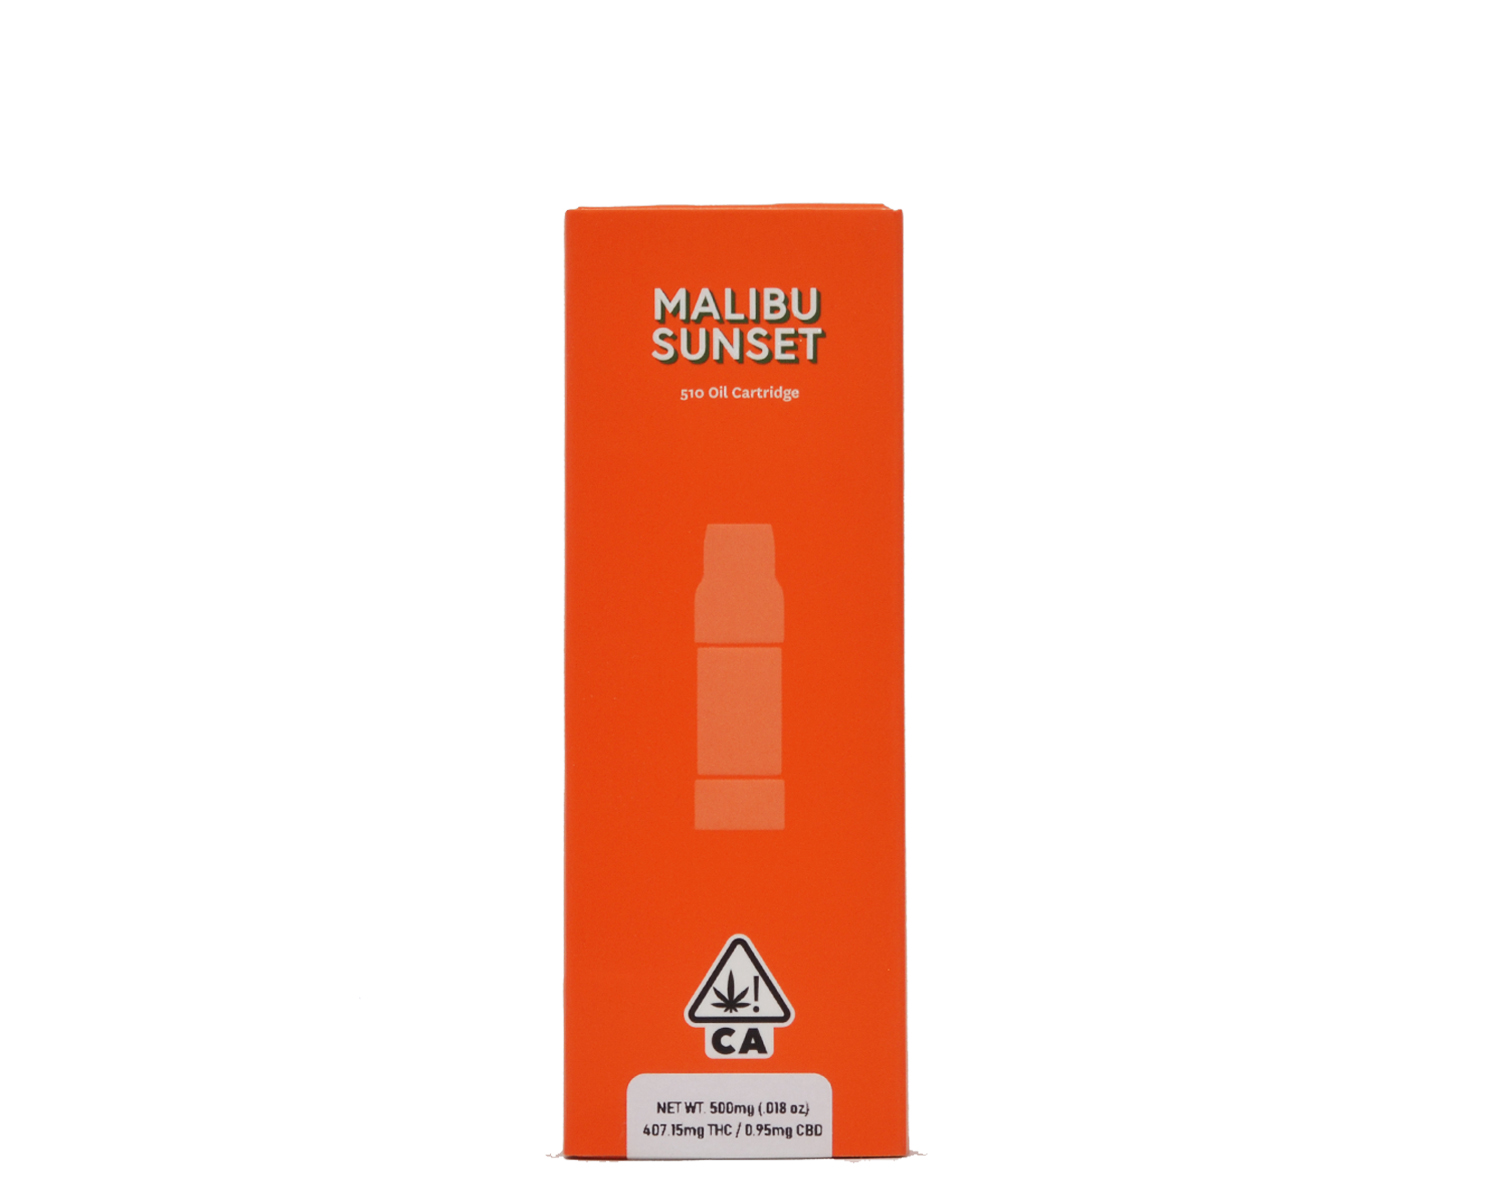 Sherbinskis Malibu Sunset Sauce Cartridge .5g  81.43% THC .19% CBD   $35   This indica-leaning strain's fragrant earthy aroma makes for a full sensory experience. The harmonious wave of pineapple and coconut makes for a perfect nightcap. Its dreamy smoke carries you towards a more tranquil state of mind and relieves sleeplessness and what ails you. 500mg